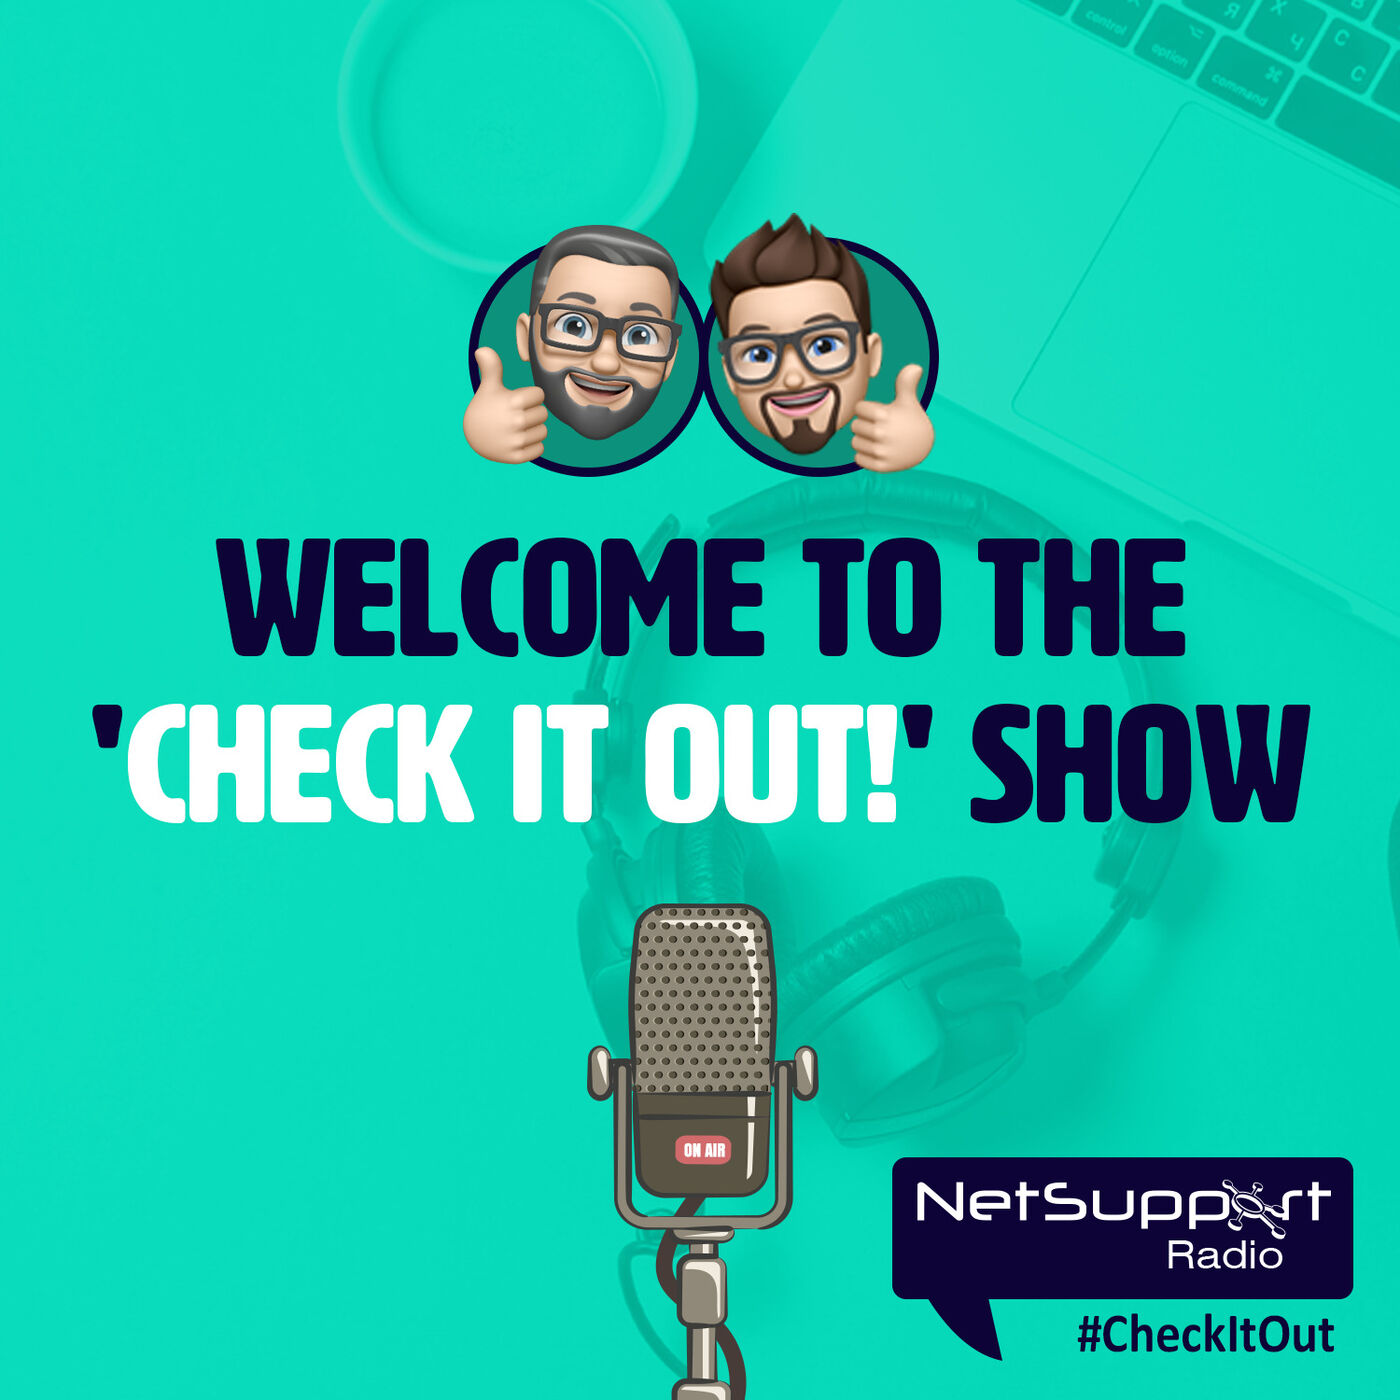 Welcome to the 'Check it out!' show